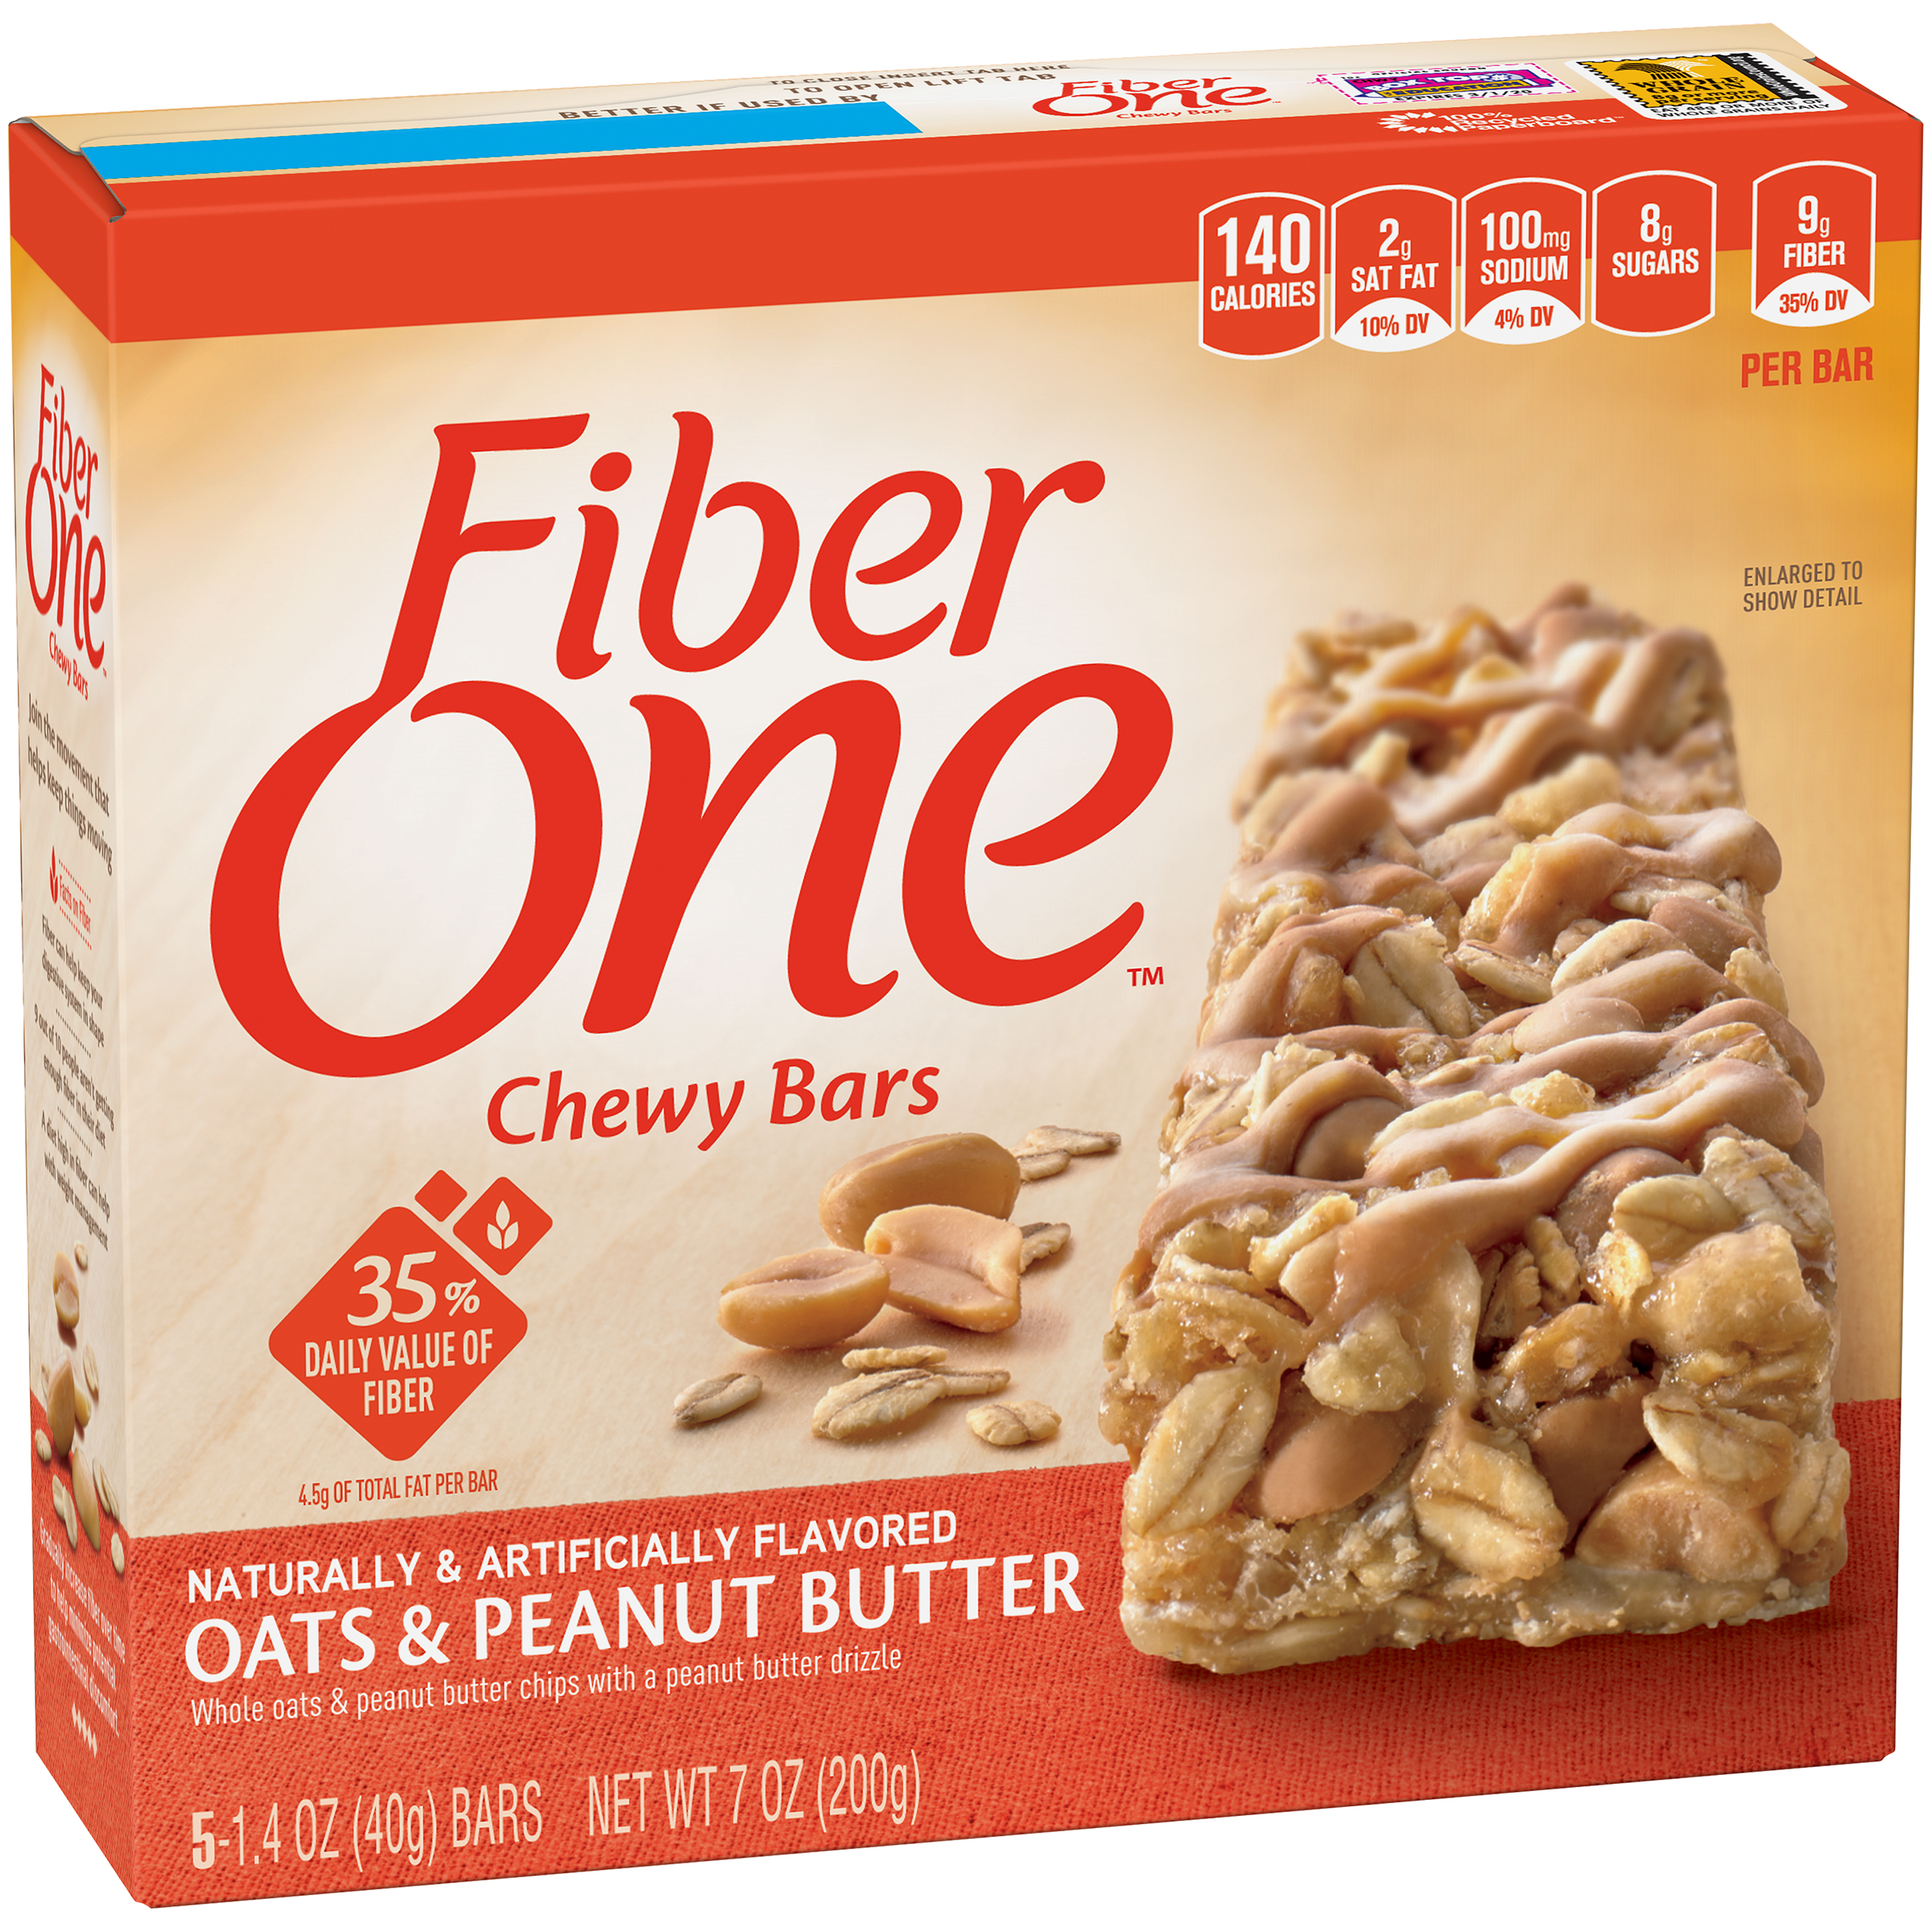 Fiber One��� Oats & Peanut Butter Chewy Bars 5-1.4 oz. Wrappers